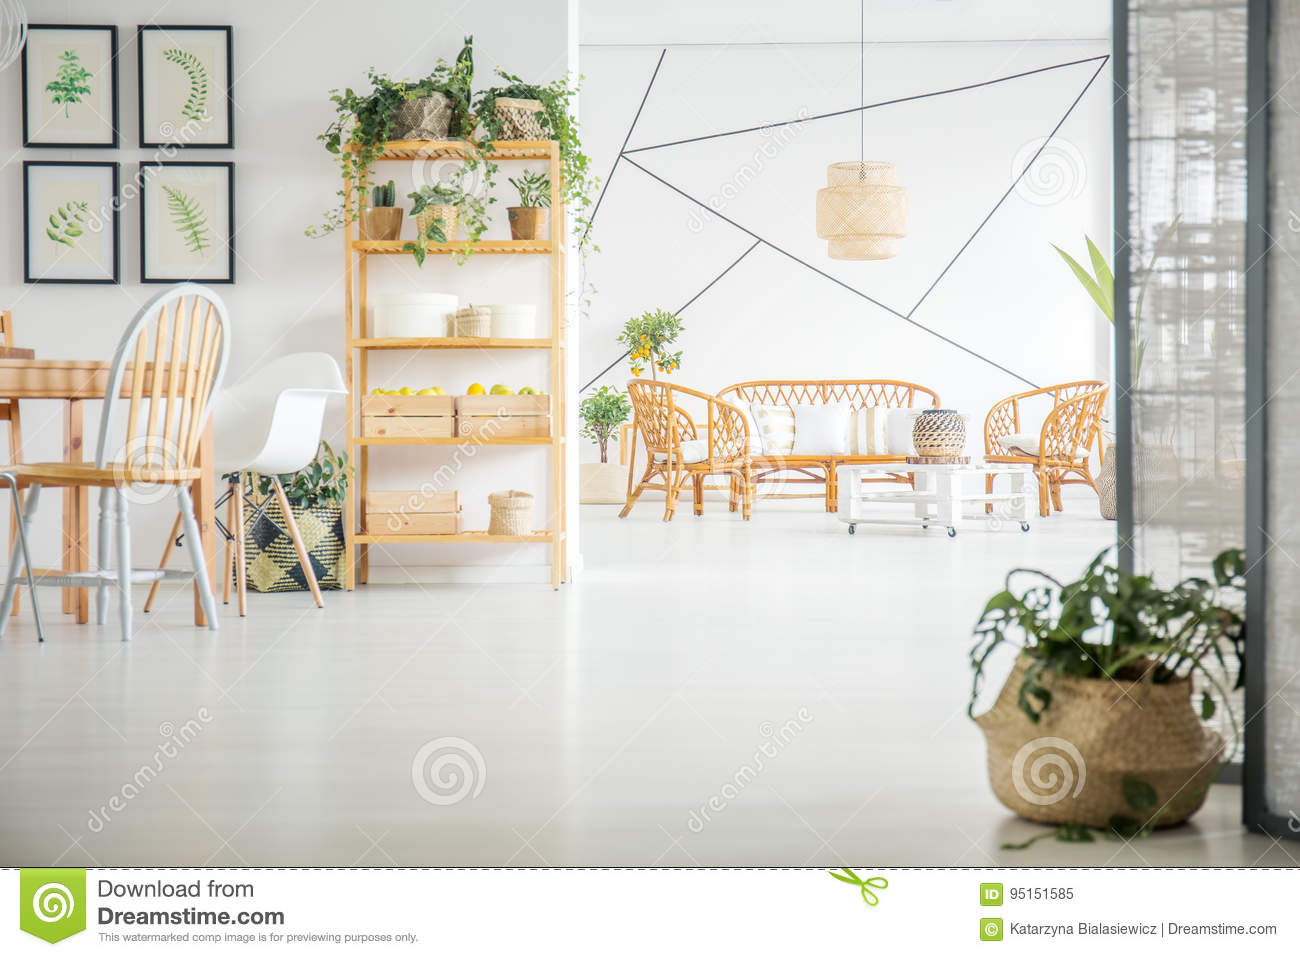 Living And Dining Room With Plants Stock Image - Image of decorative ...